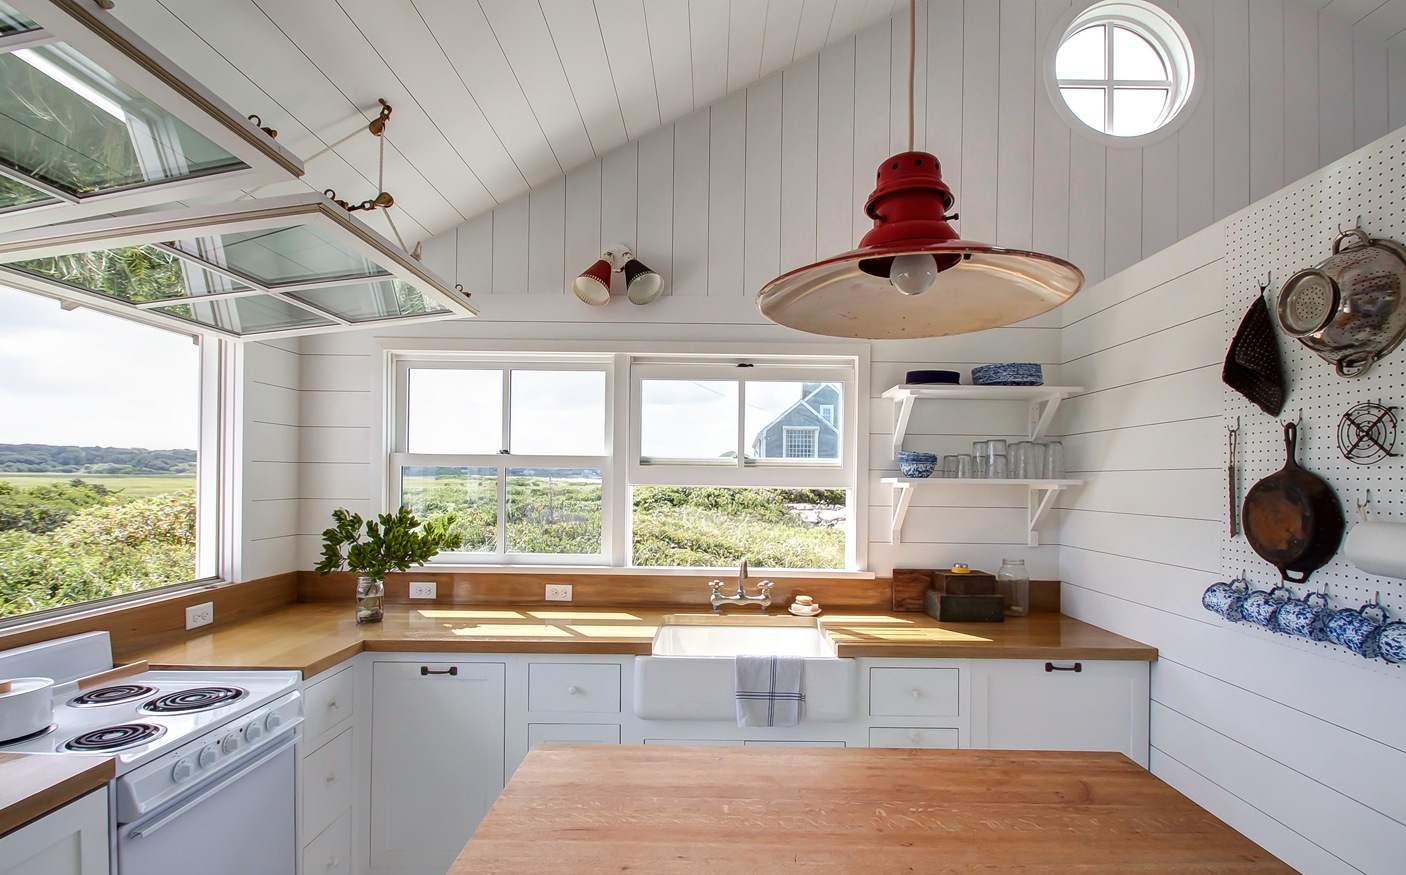 falmouth-beach-cottage-kitchen-2-1.jpg